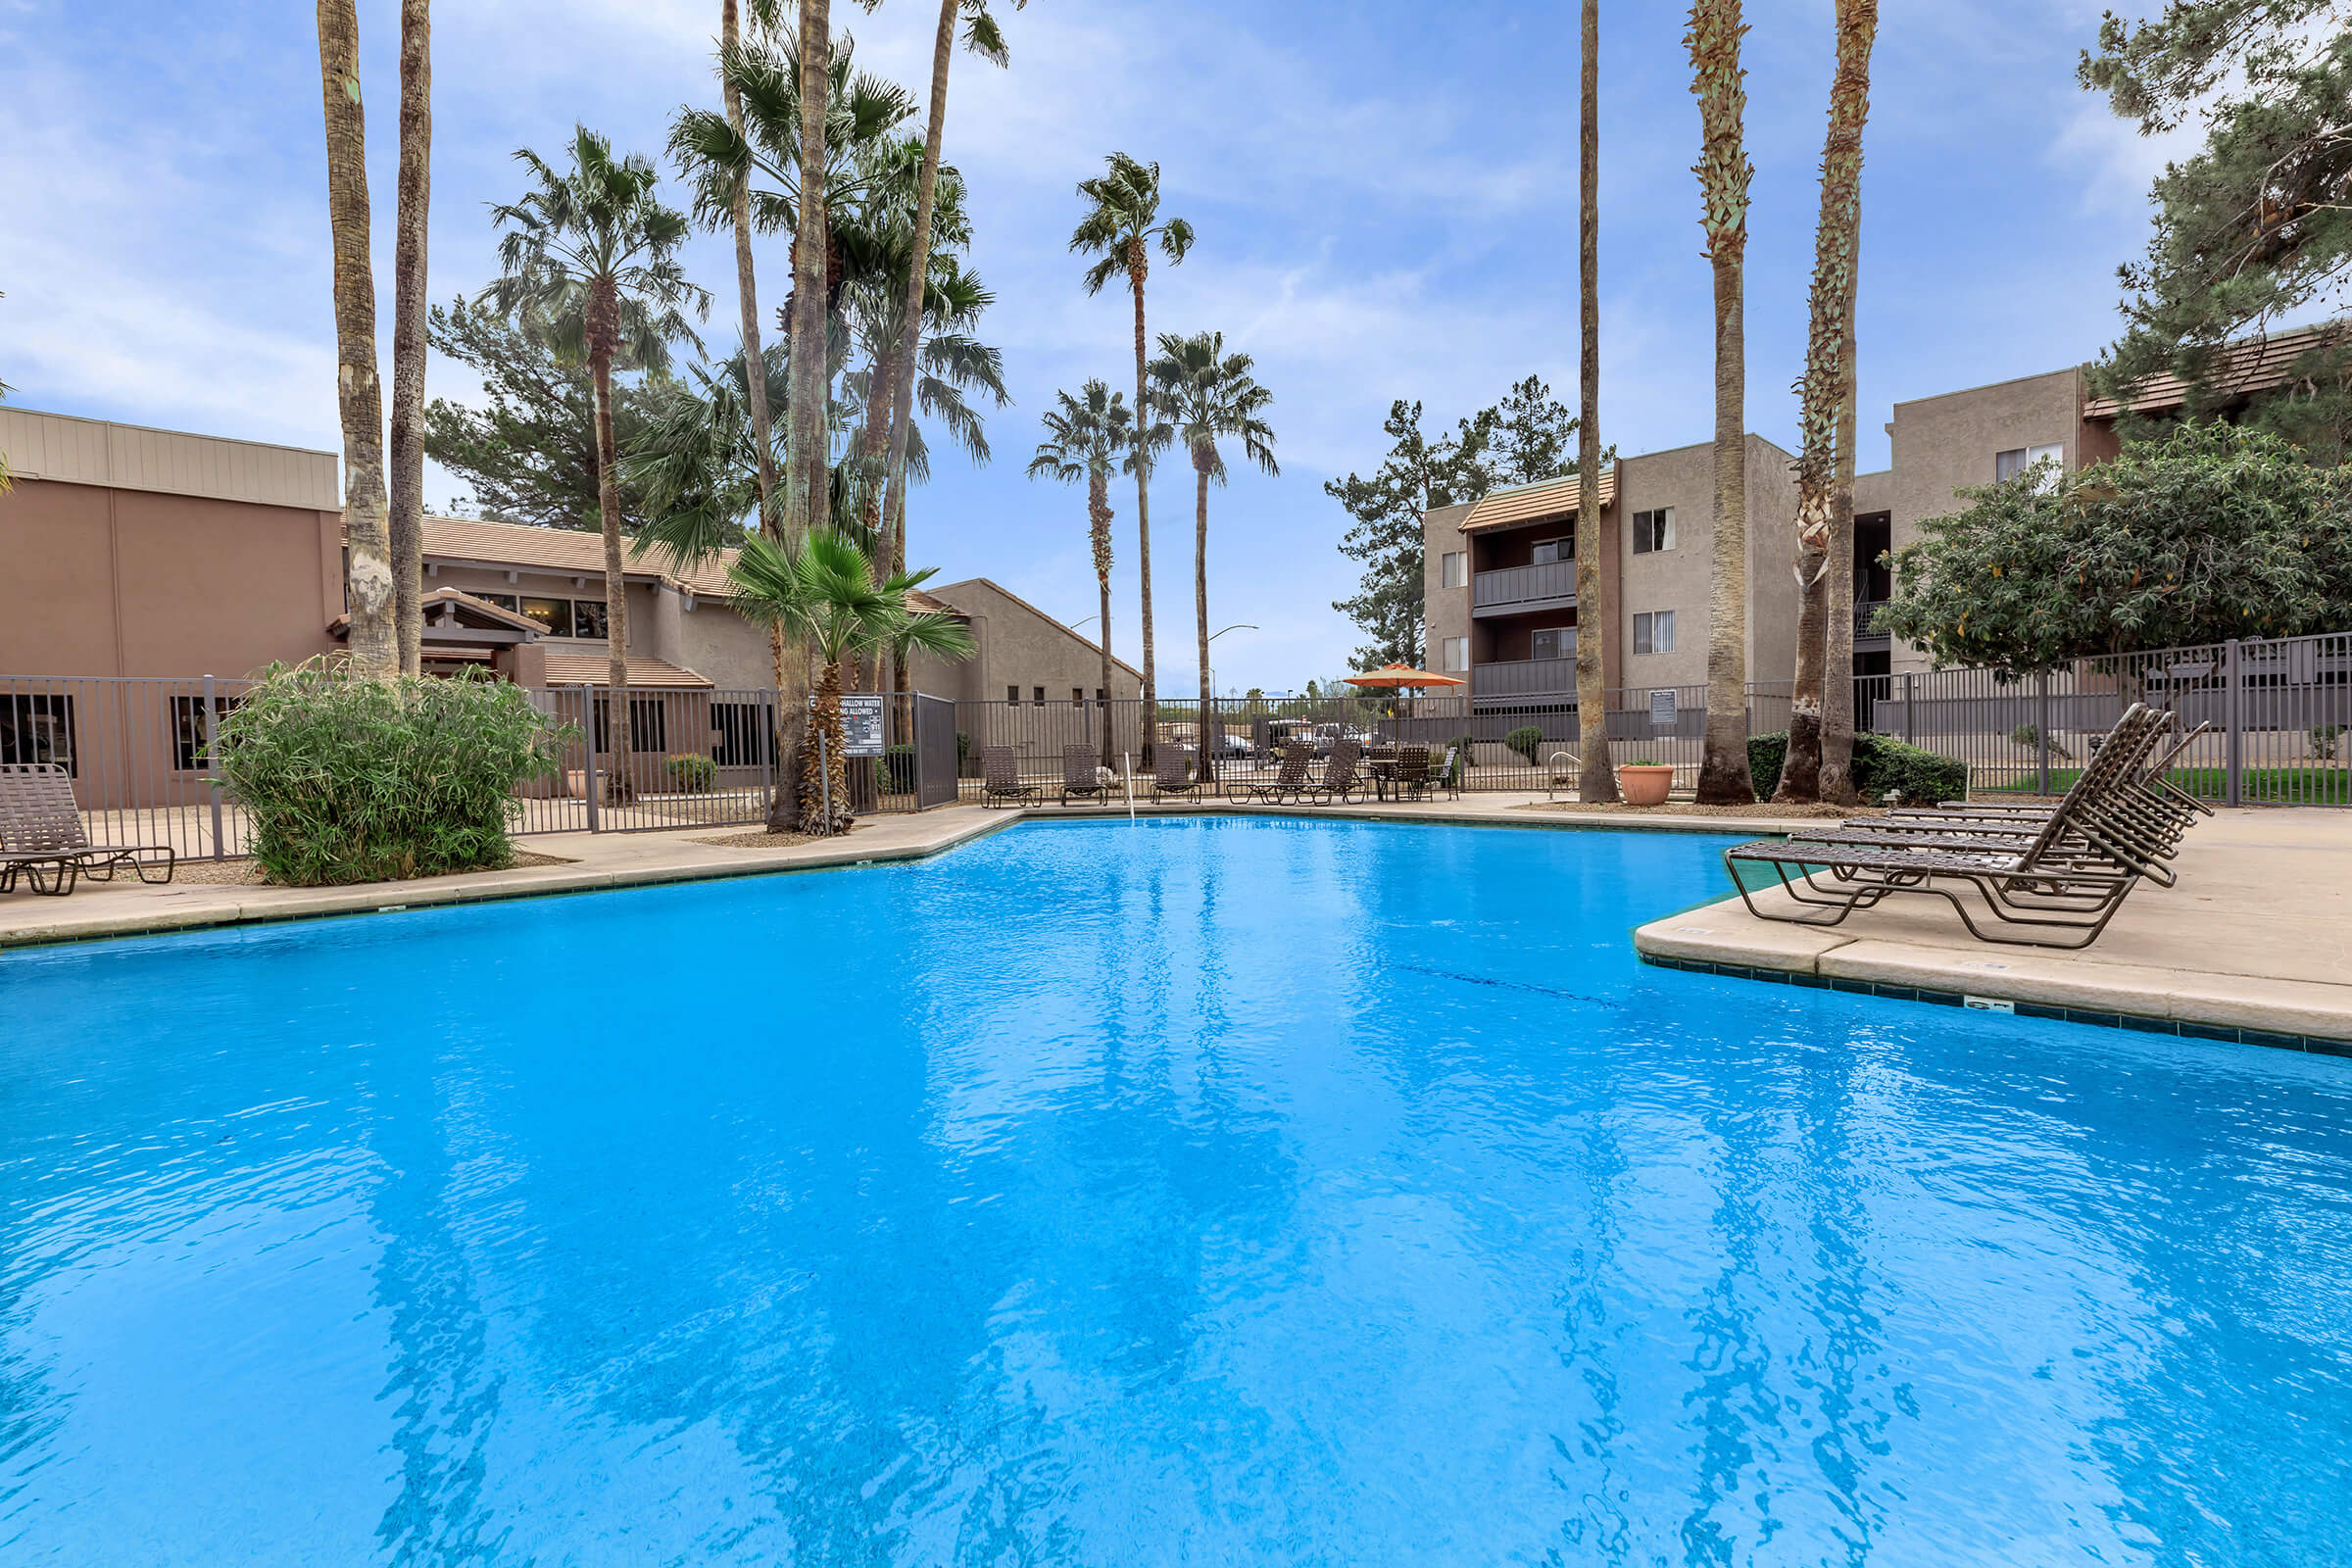 Tanque Verde Apartments Apartment Homes In Tucson AZ - Masse pool table